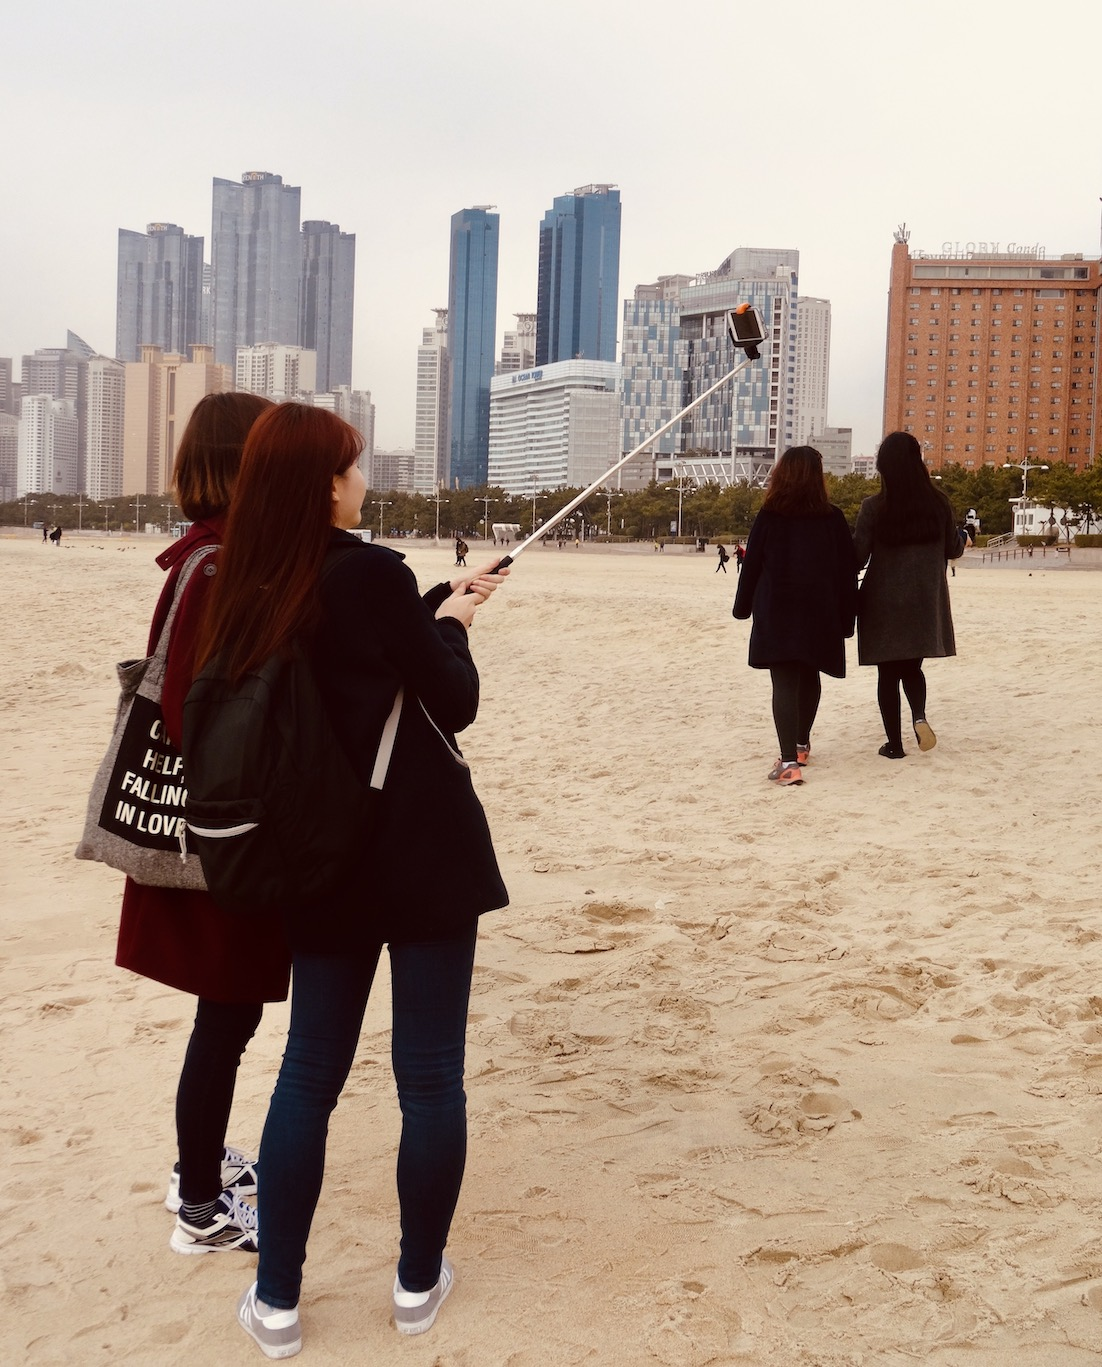 Selfie queens Haeundae Beach South Korea.